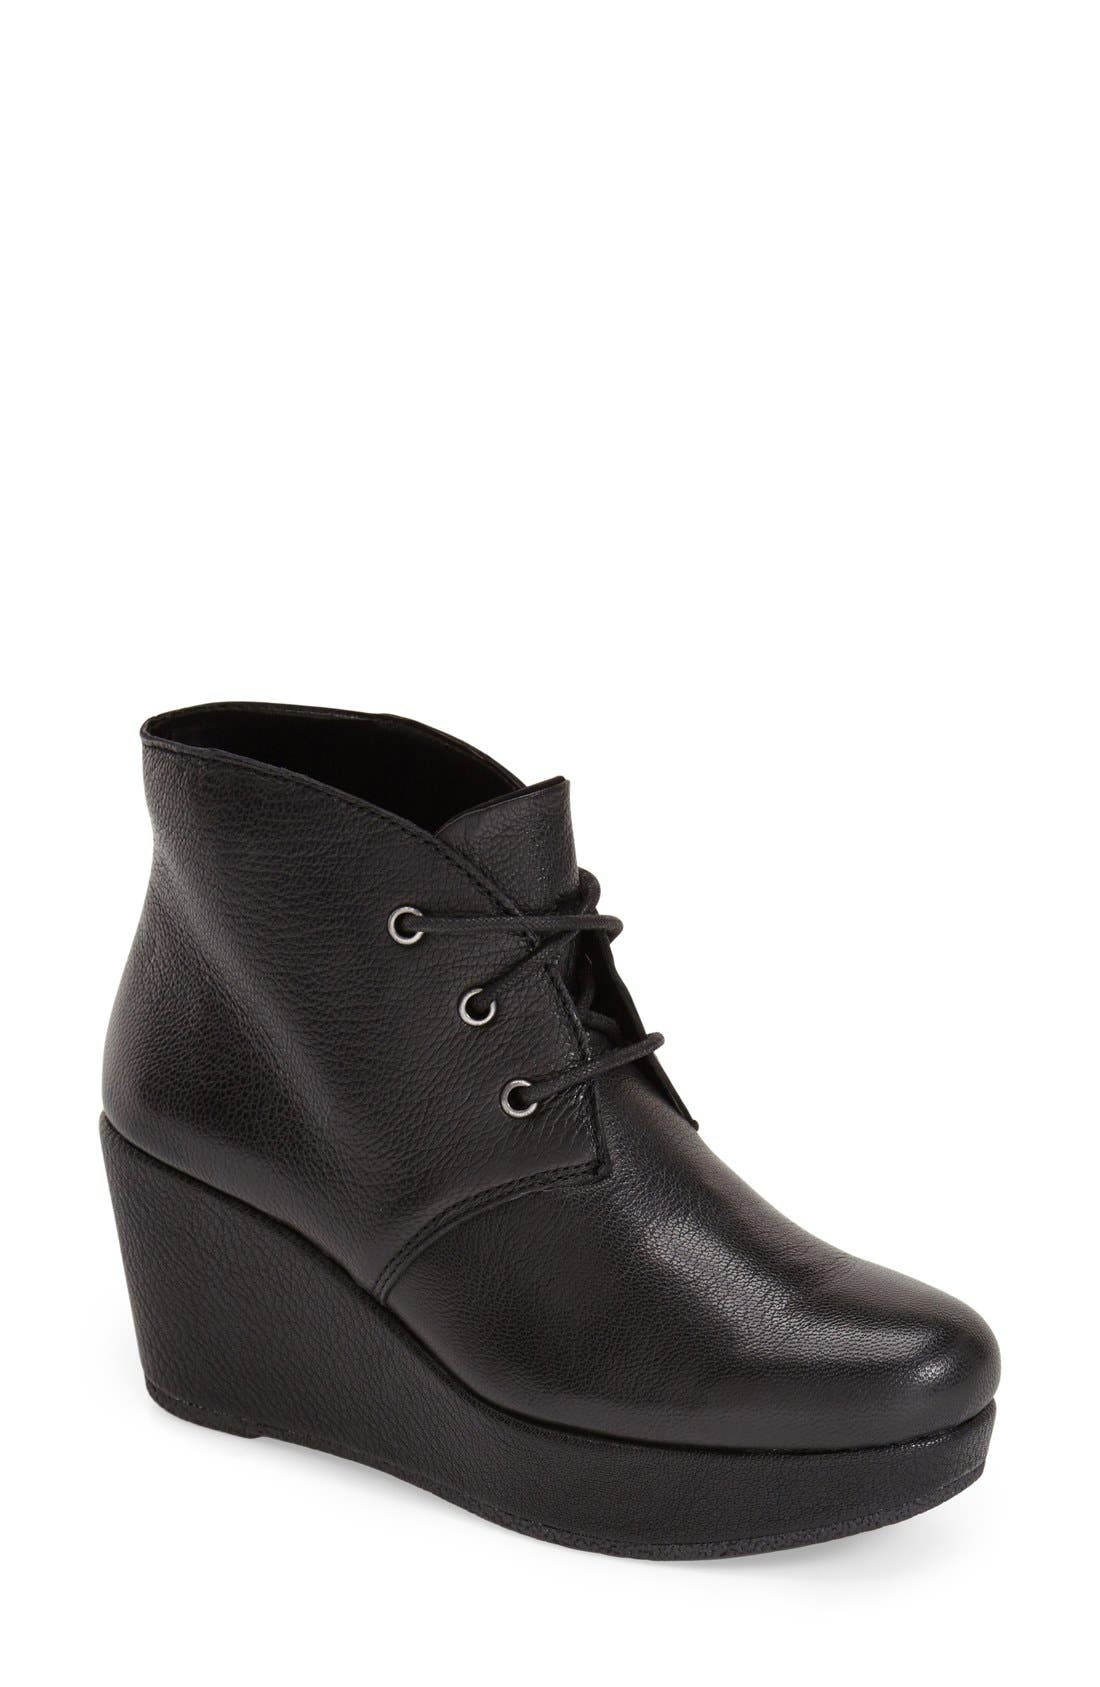 Main Image - BCBGeneration 'Kenan' Platform Wedge Boot (Women)